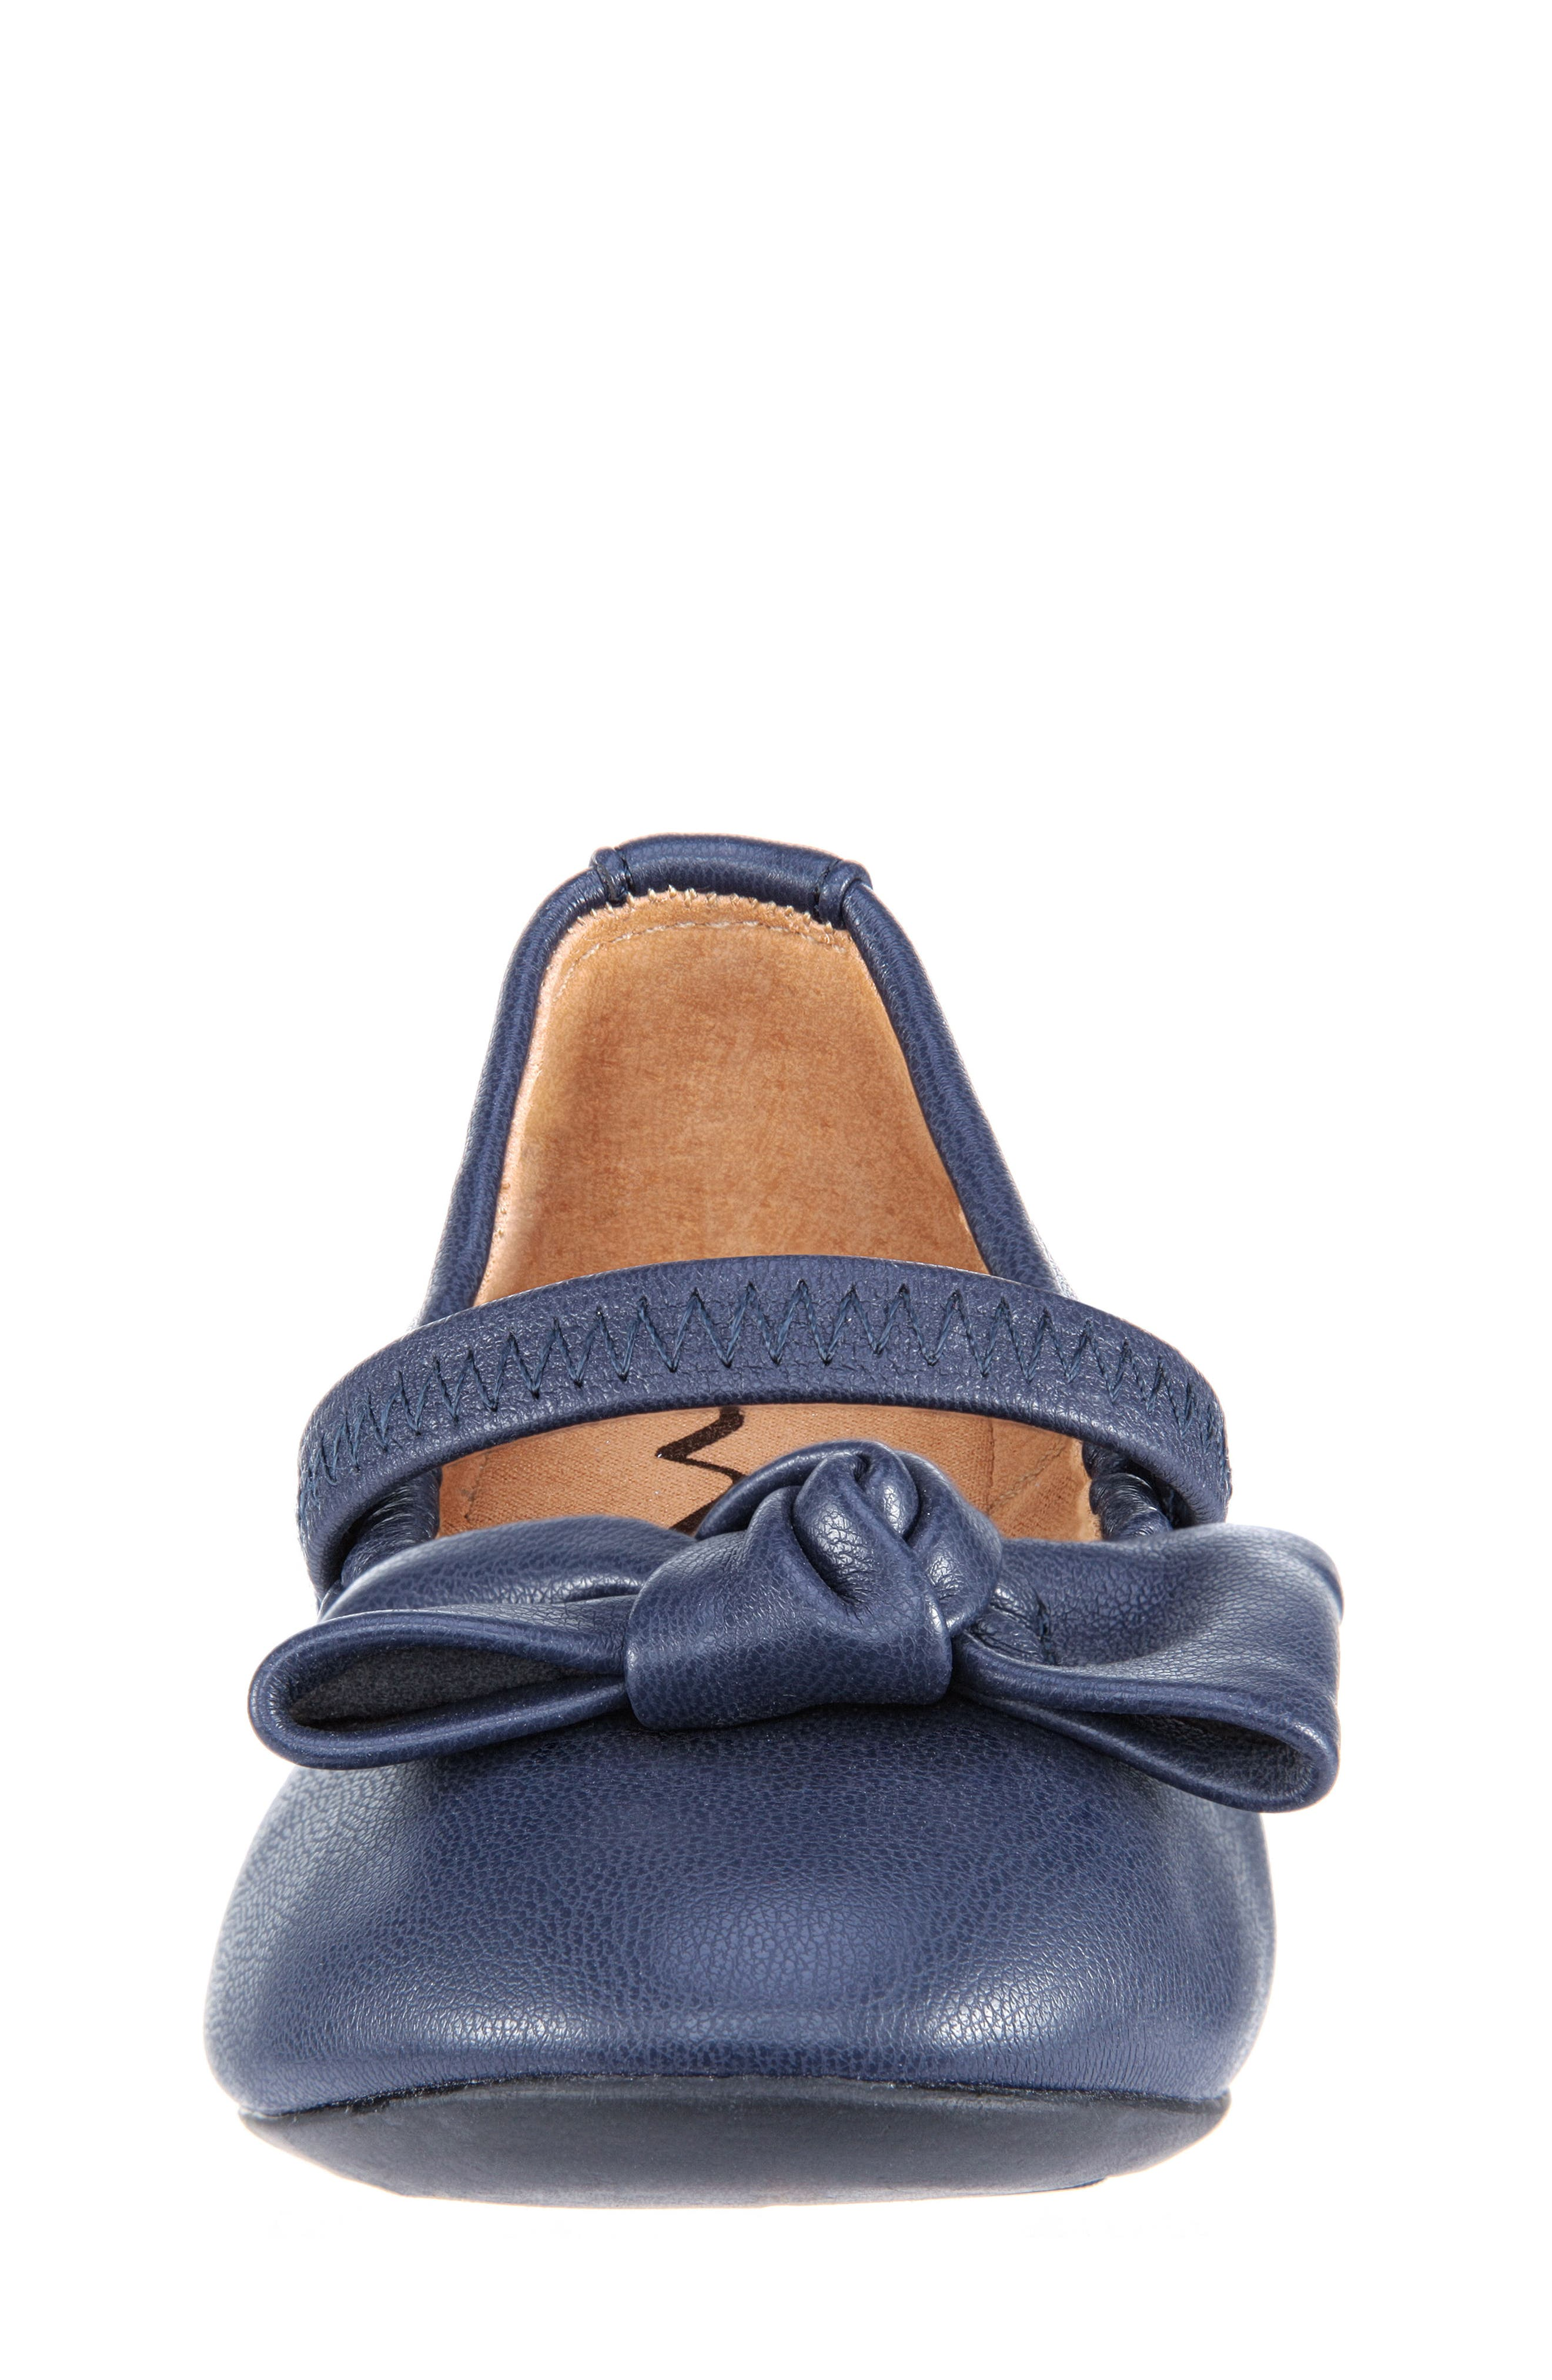 Karla Bow Ballet Flat,                             Alternate thumbnail 4, color,                             Navy Smooth Blue